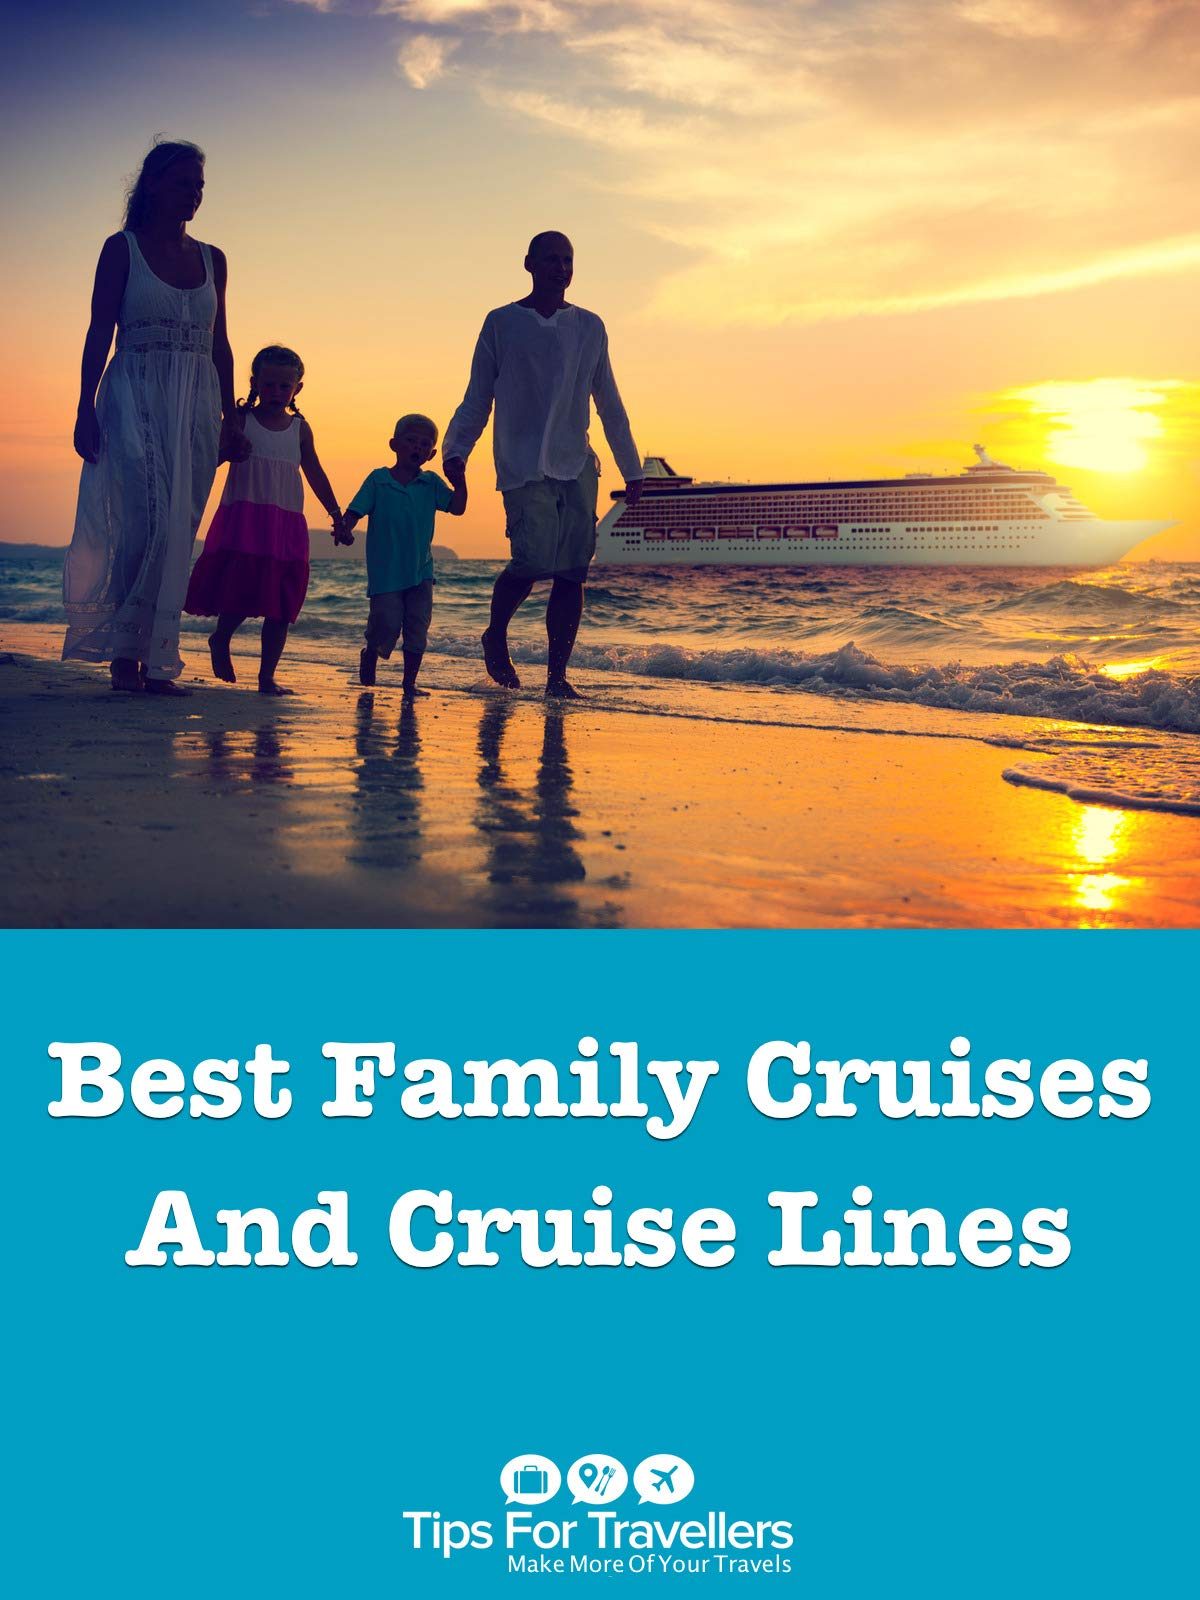 Clip: Best Family Cruises And Cruise Lines on Amazon Prime Video UK